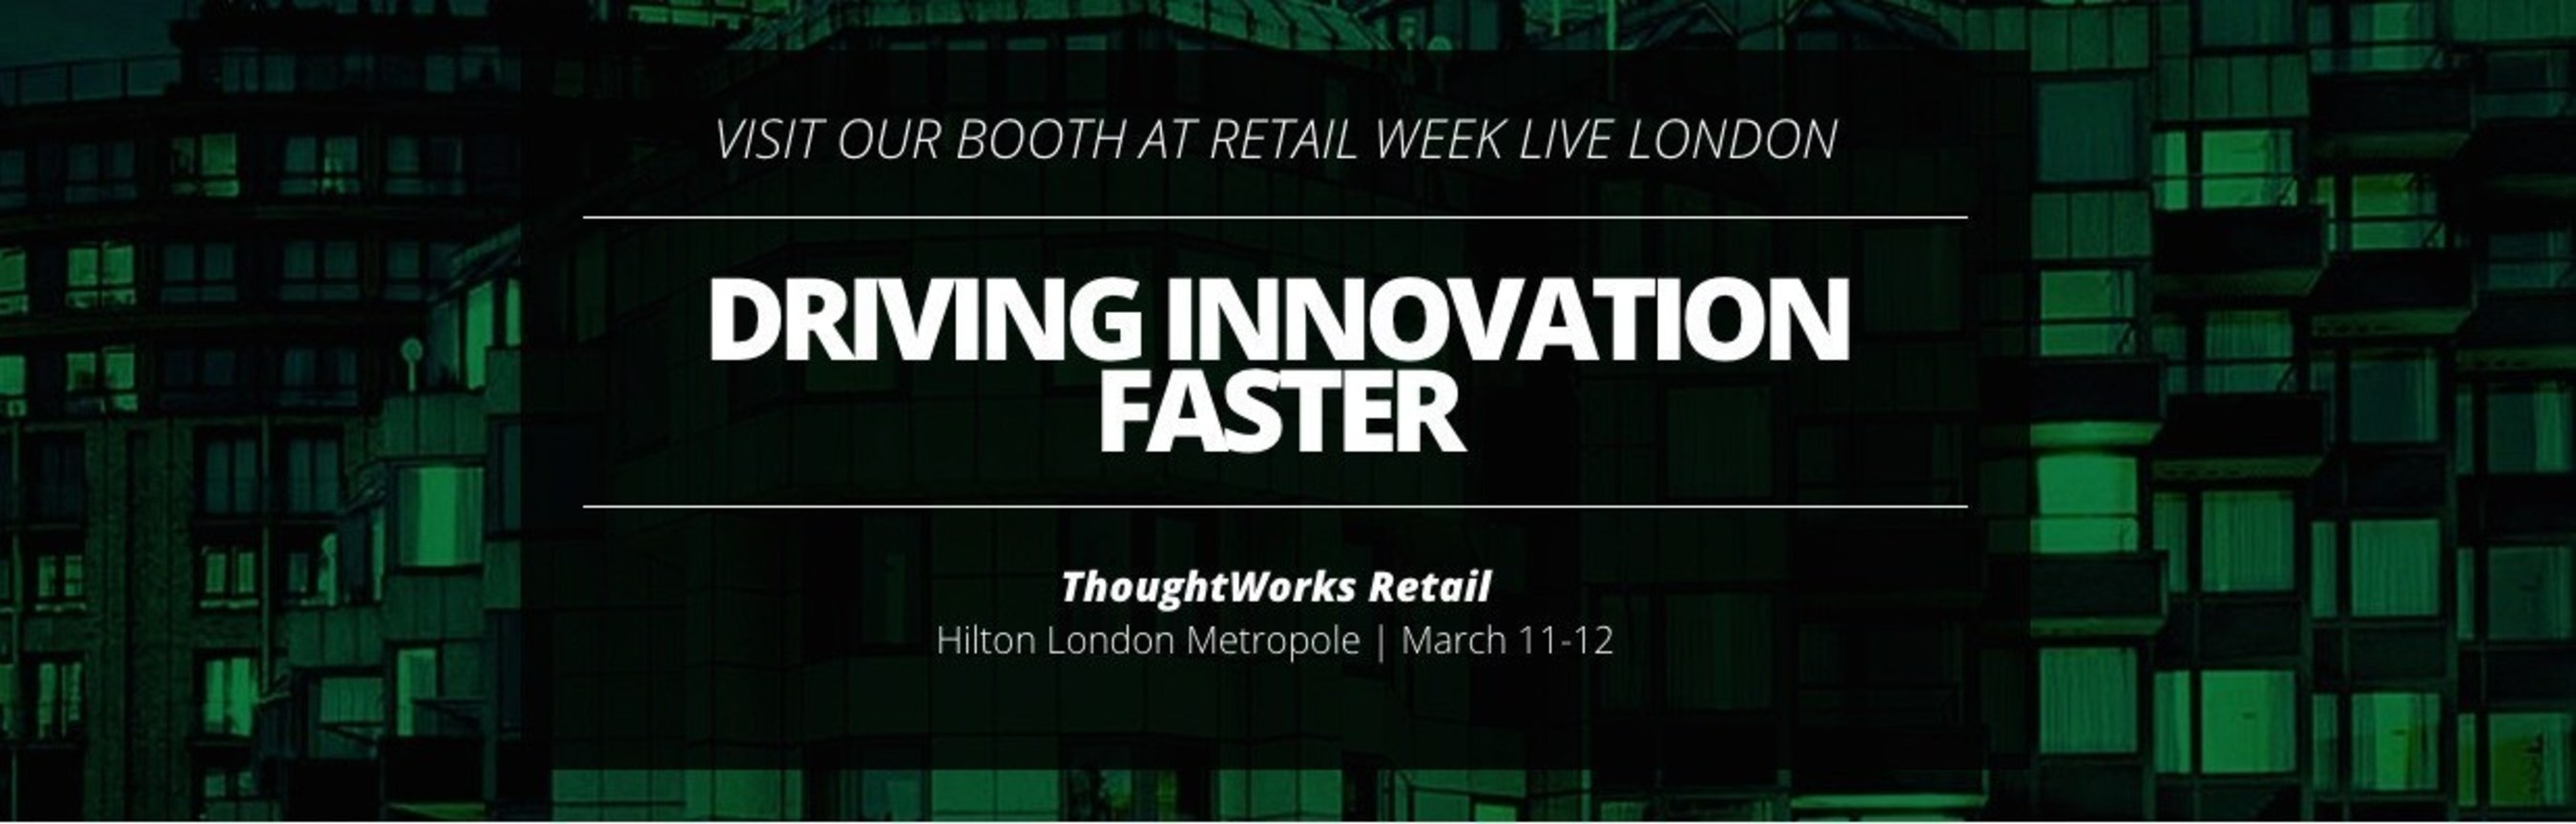 ThoughtWorks' Retail Business Announces Growth Plan for 2015